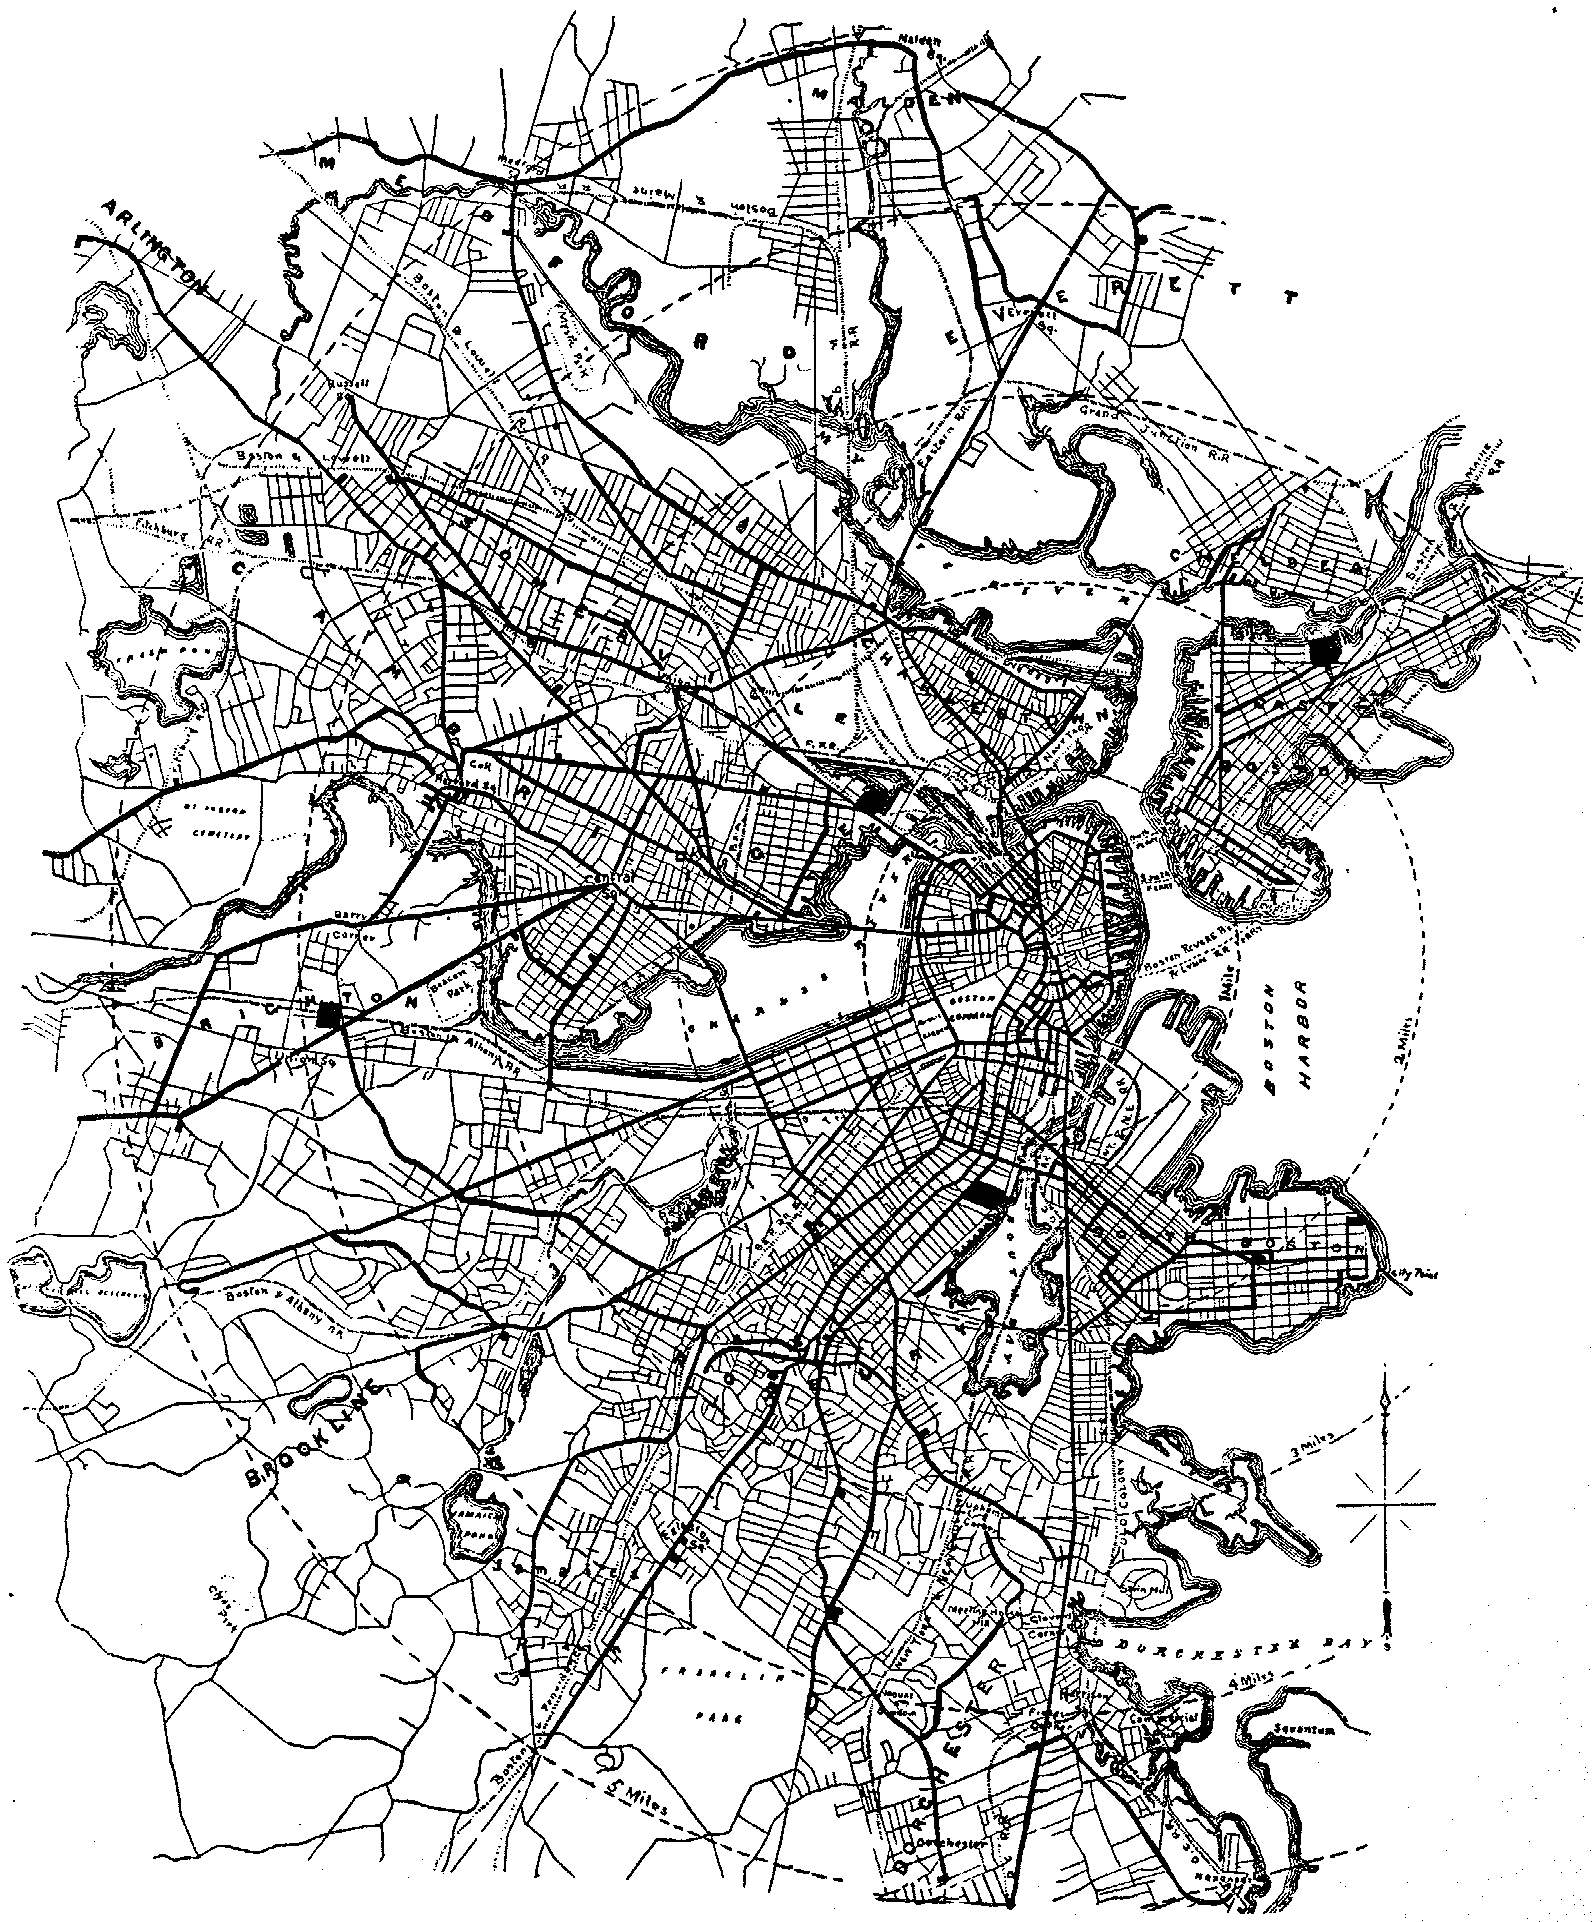 Line Art Wikipedia : File west end street railway map wikimedia commons